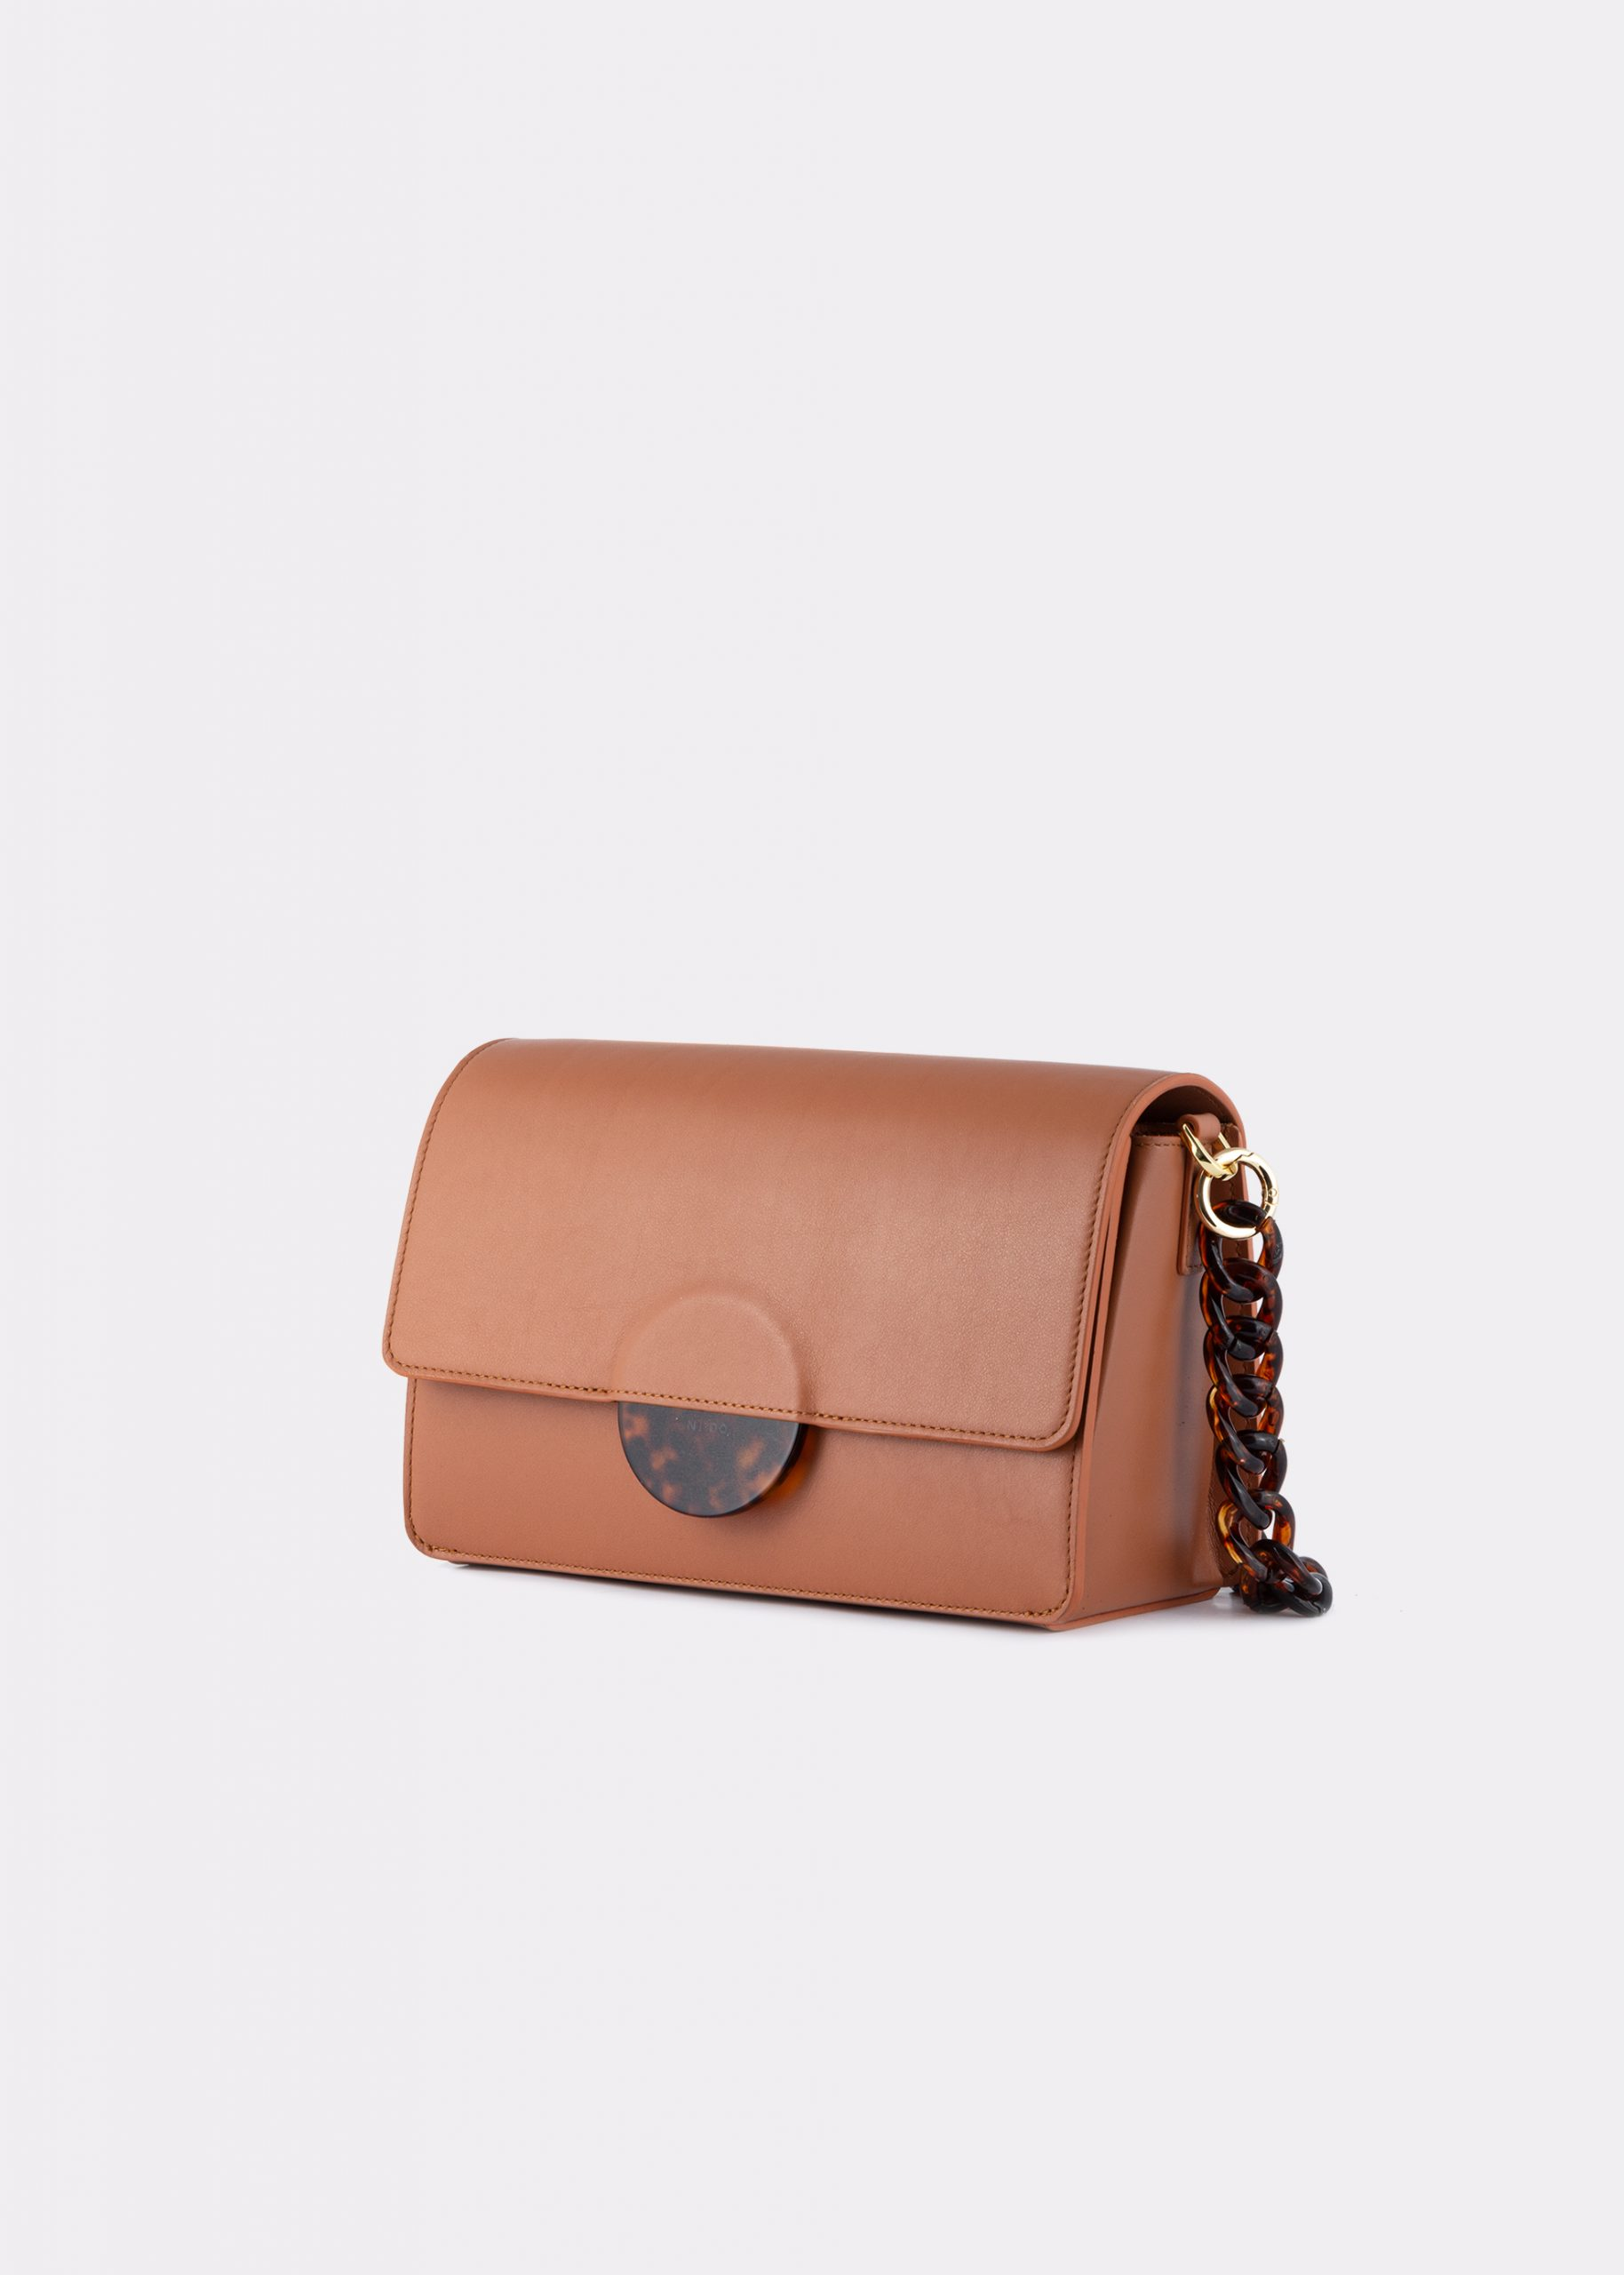 NIDO CUORE Maxi bag bisquit_SIDE view